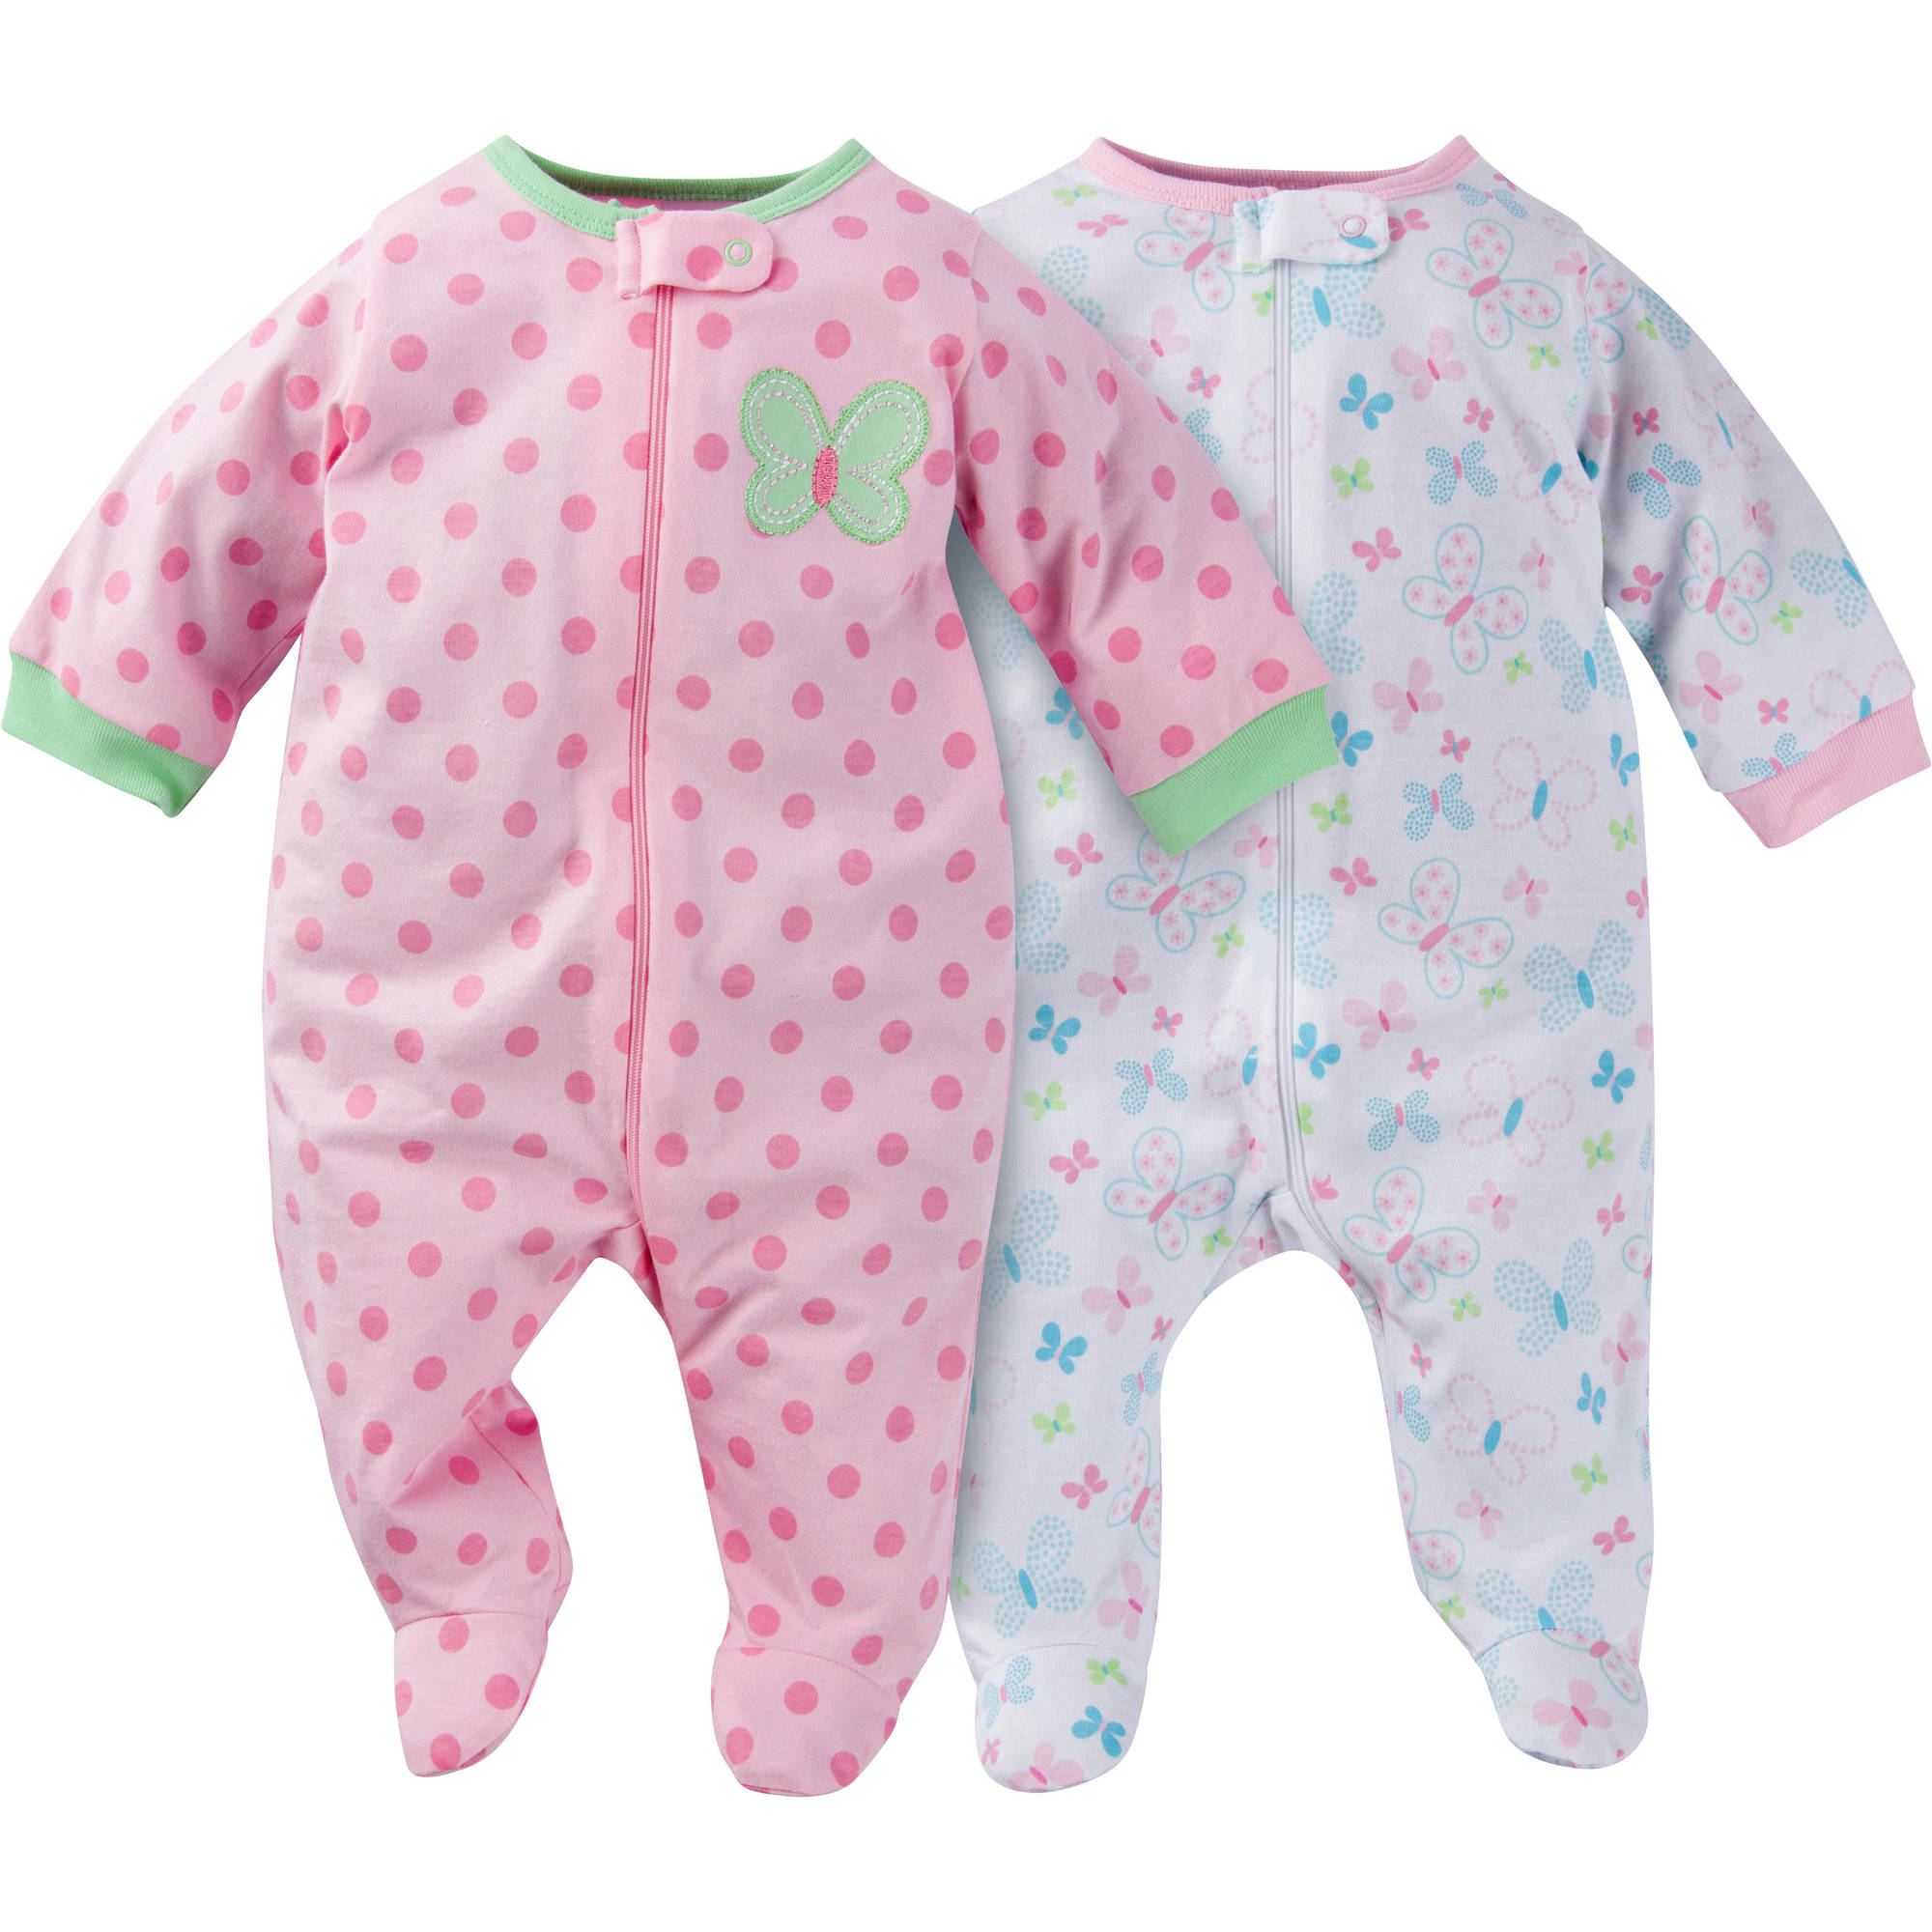 Gerber Newborn Baby Girl Zip Front Sleep N Plays, 2-Pack